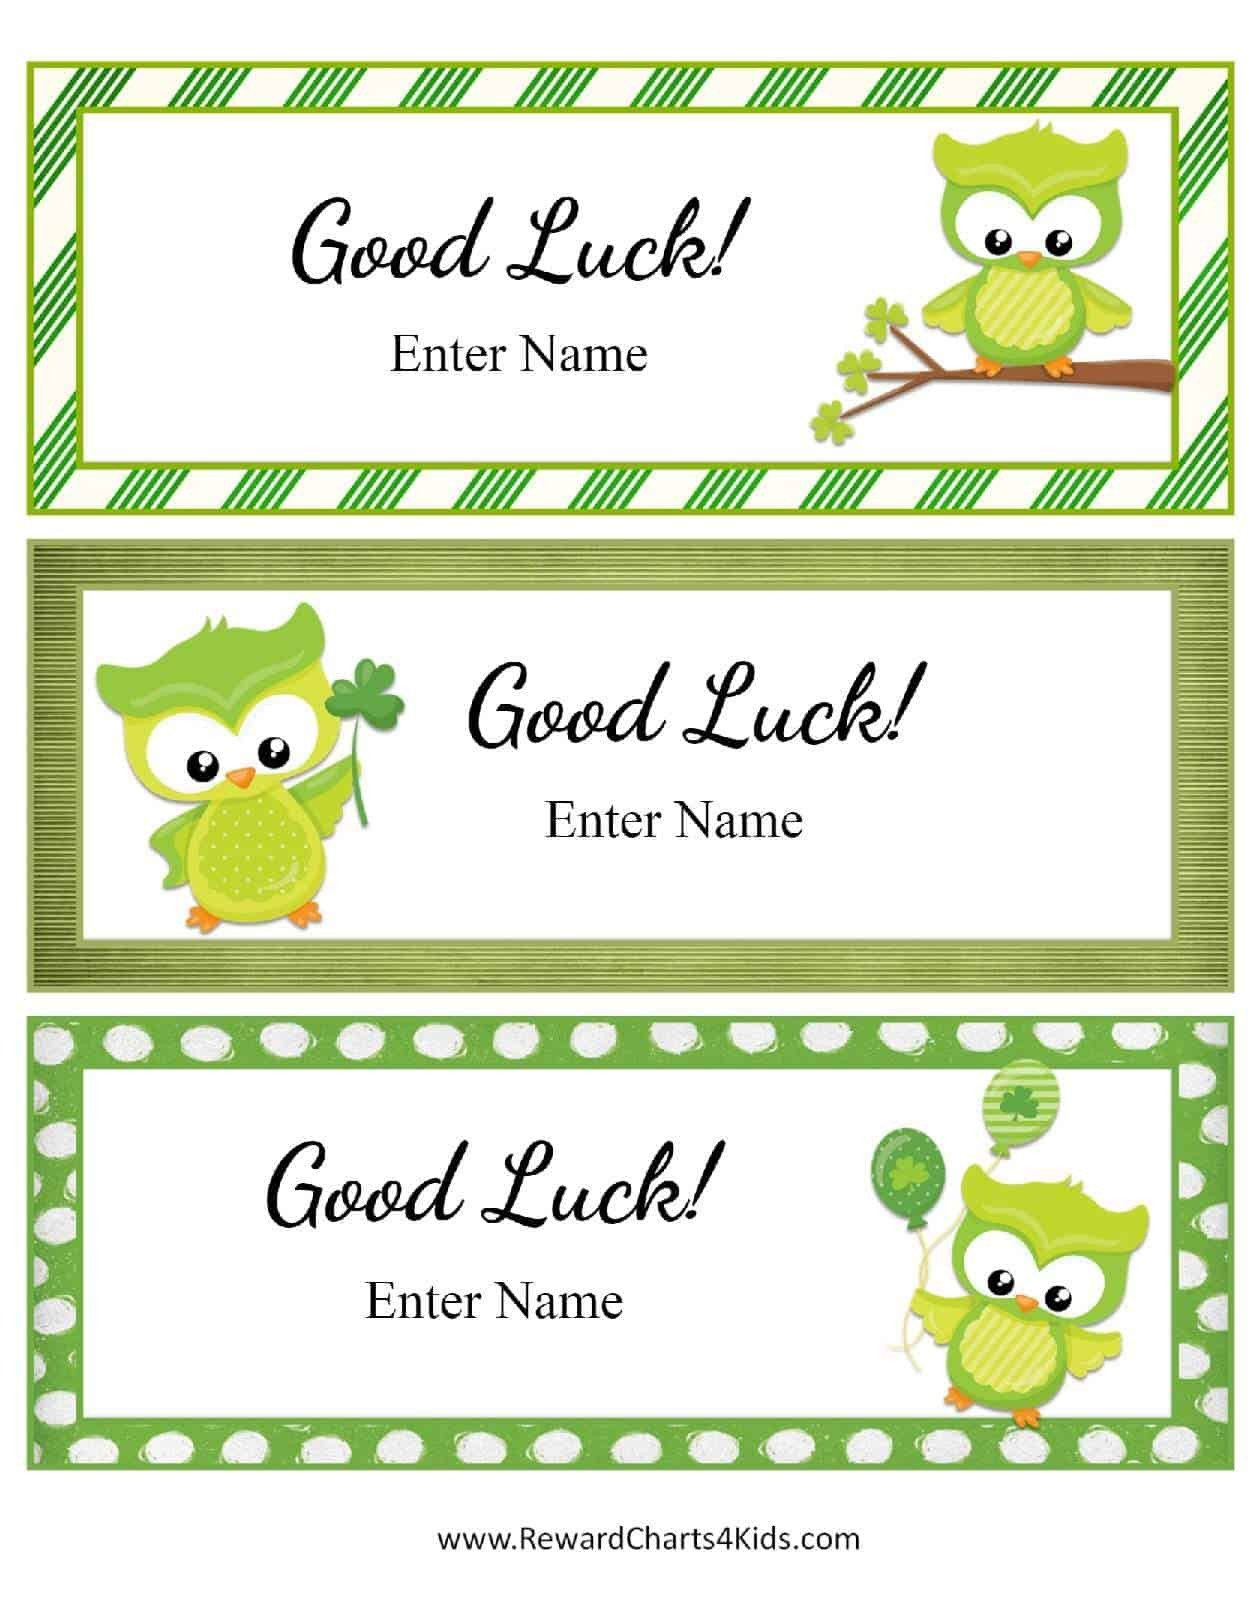 Printable Good Luck Cards Free Good Luck Cards for Kids